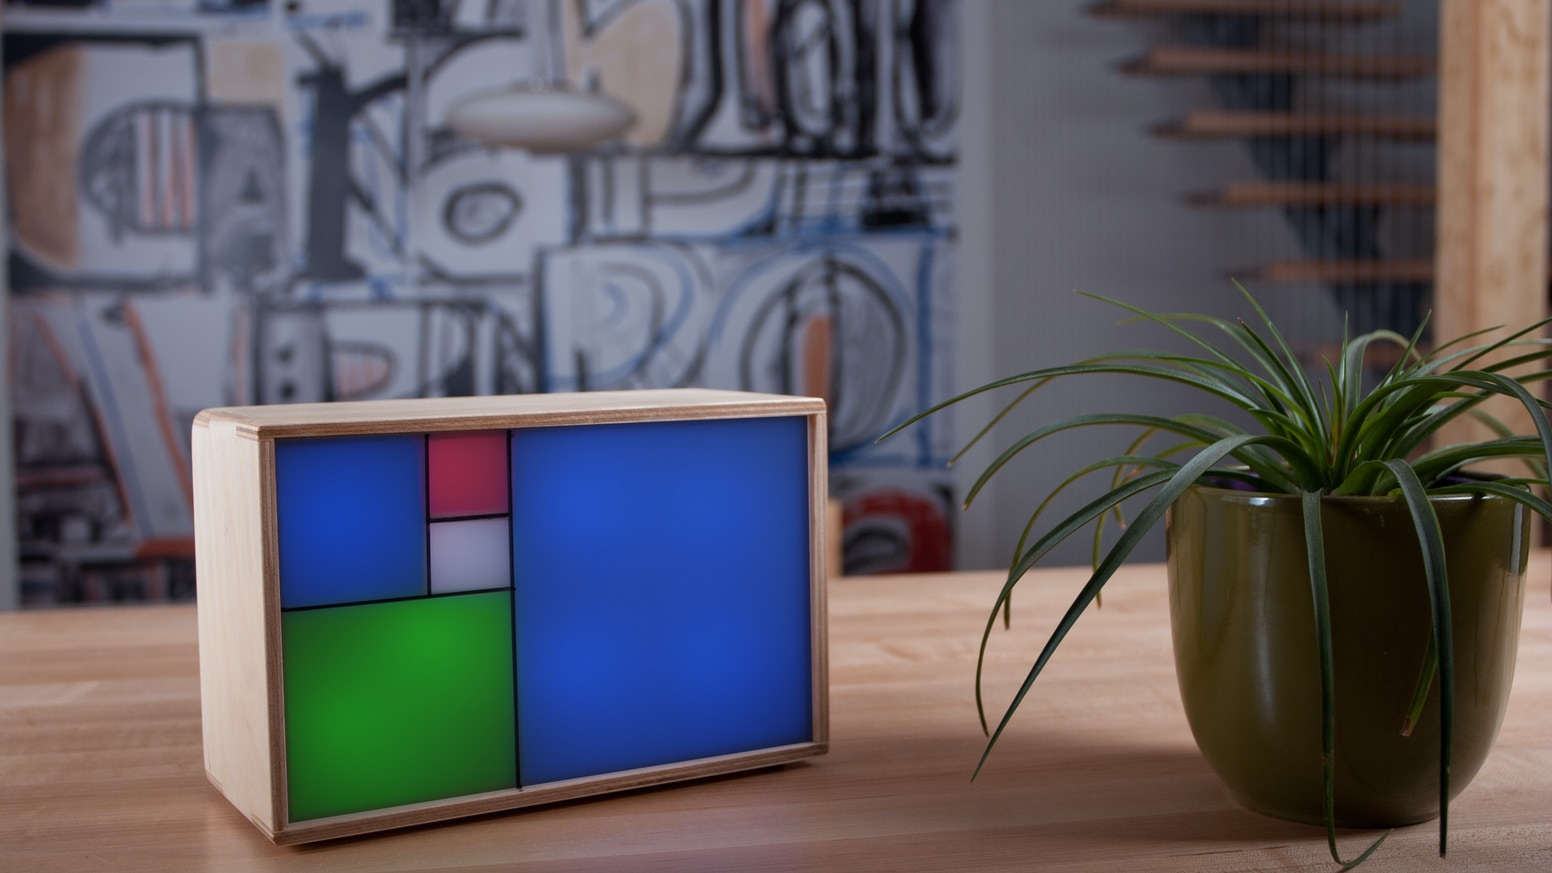 Fibonacci Clock An Open Source For Nerds With Style By Circuit Board Picture Frames These Are Awesome A Geeky Philippe Chrtien Kickstarter